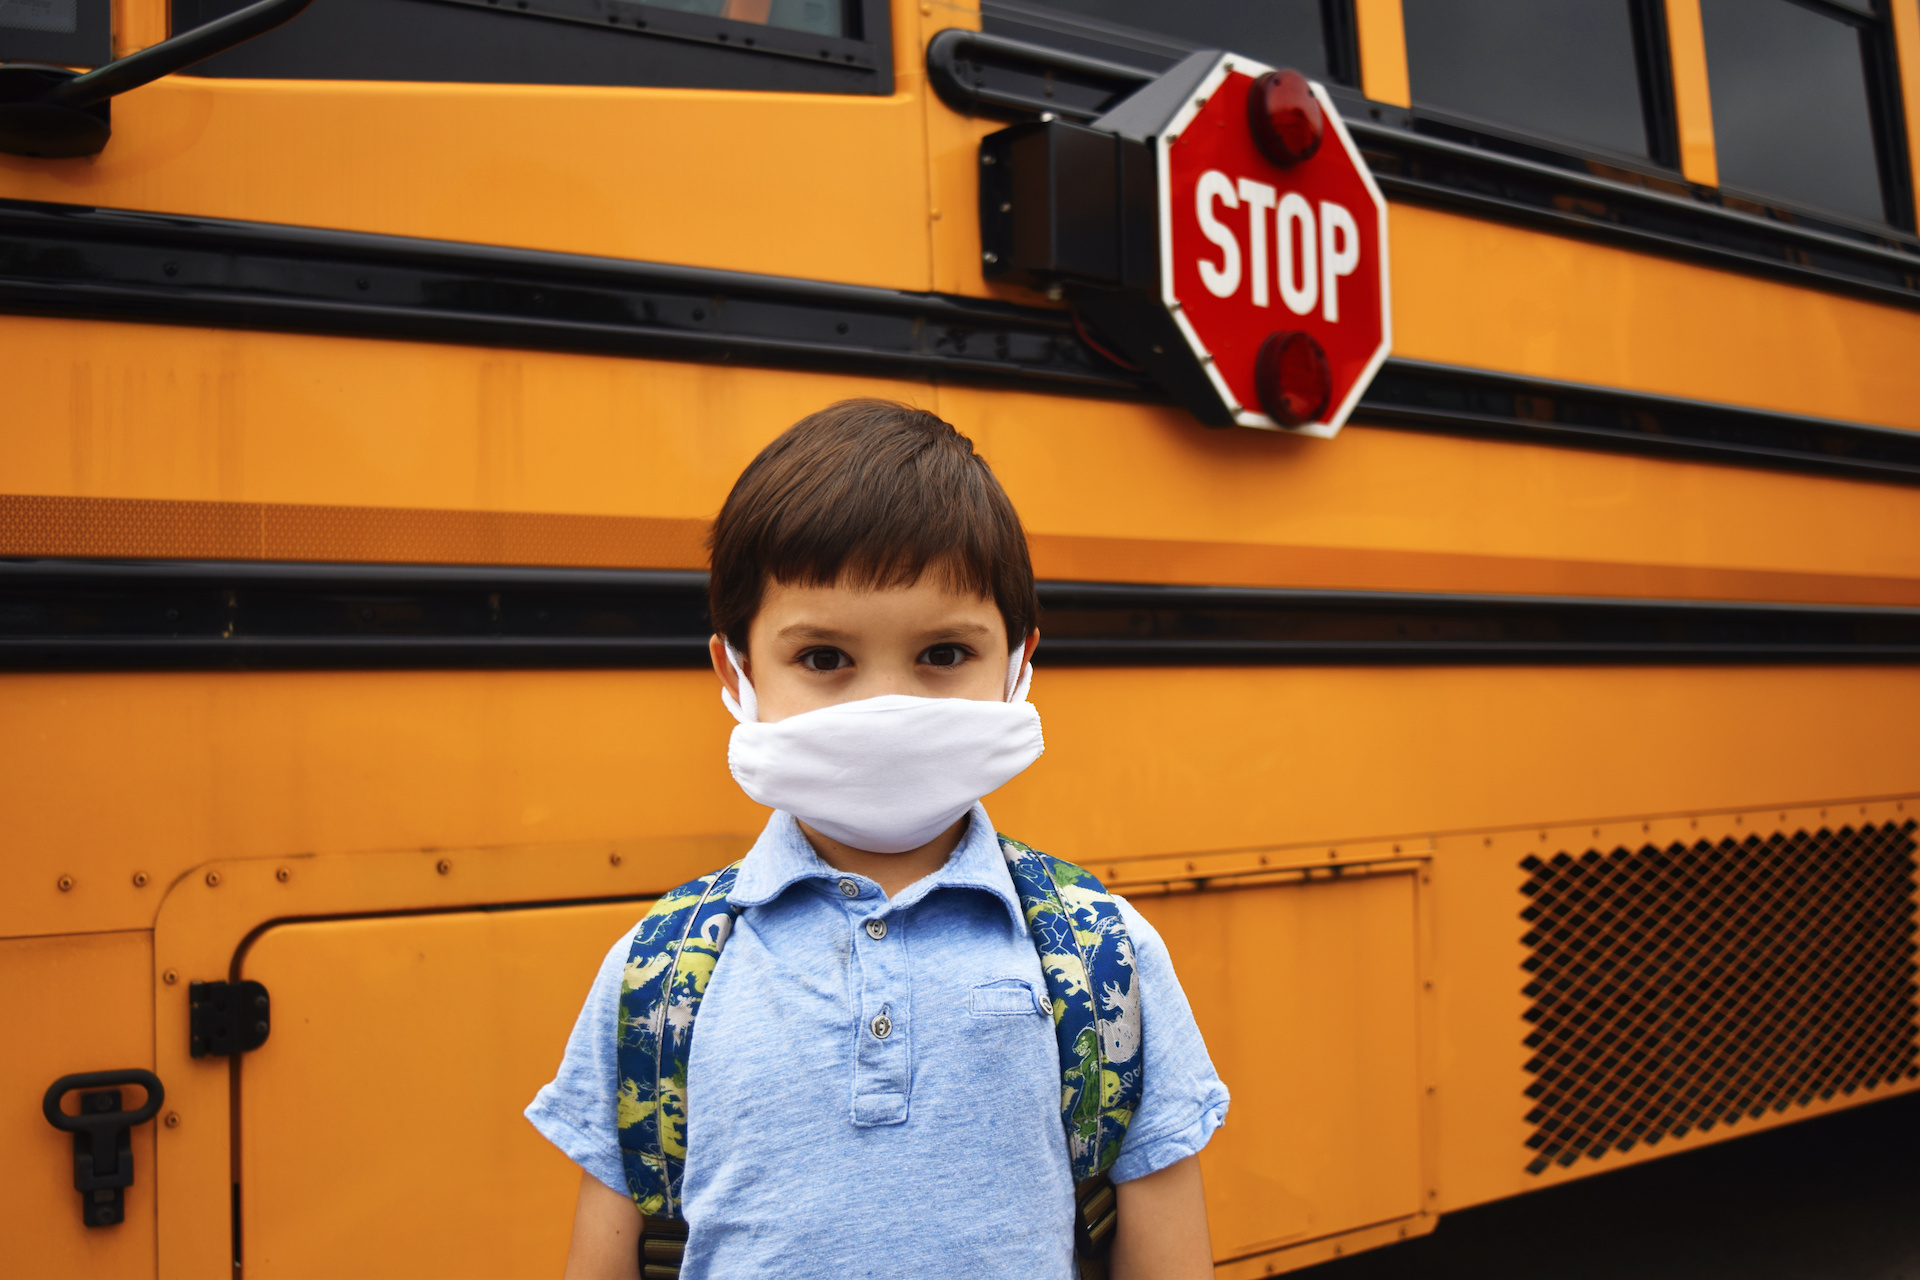 Experts Share Covid 19 Best Practices For School Bus Child Safety Restraint Systems School Transportation News